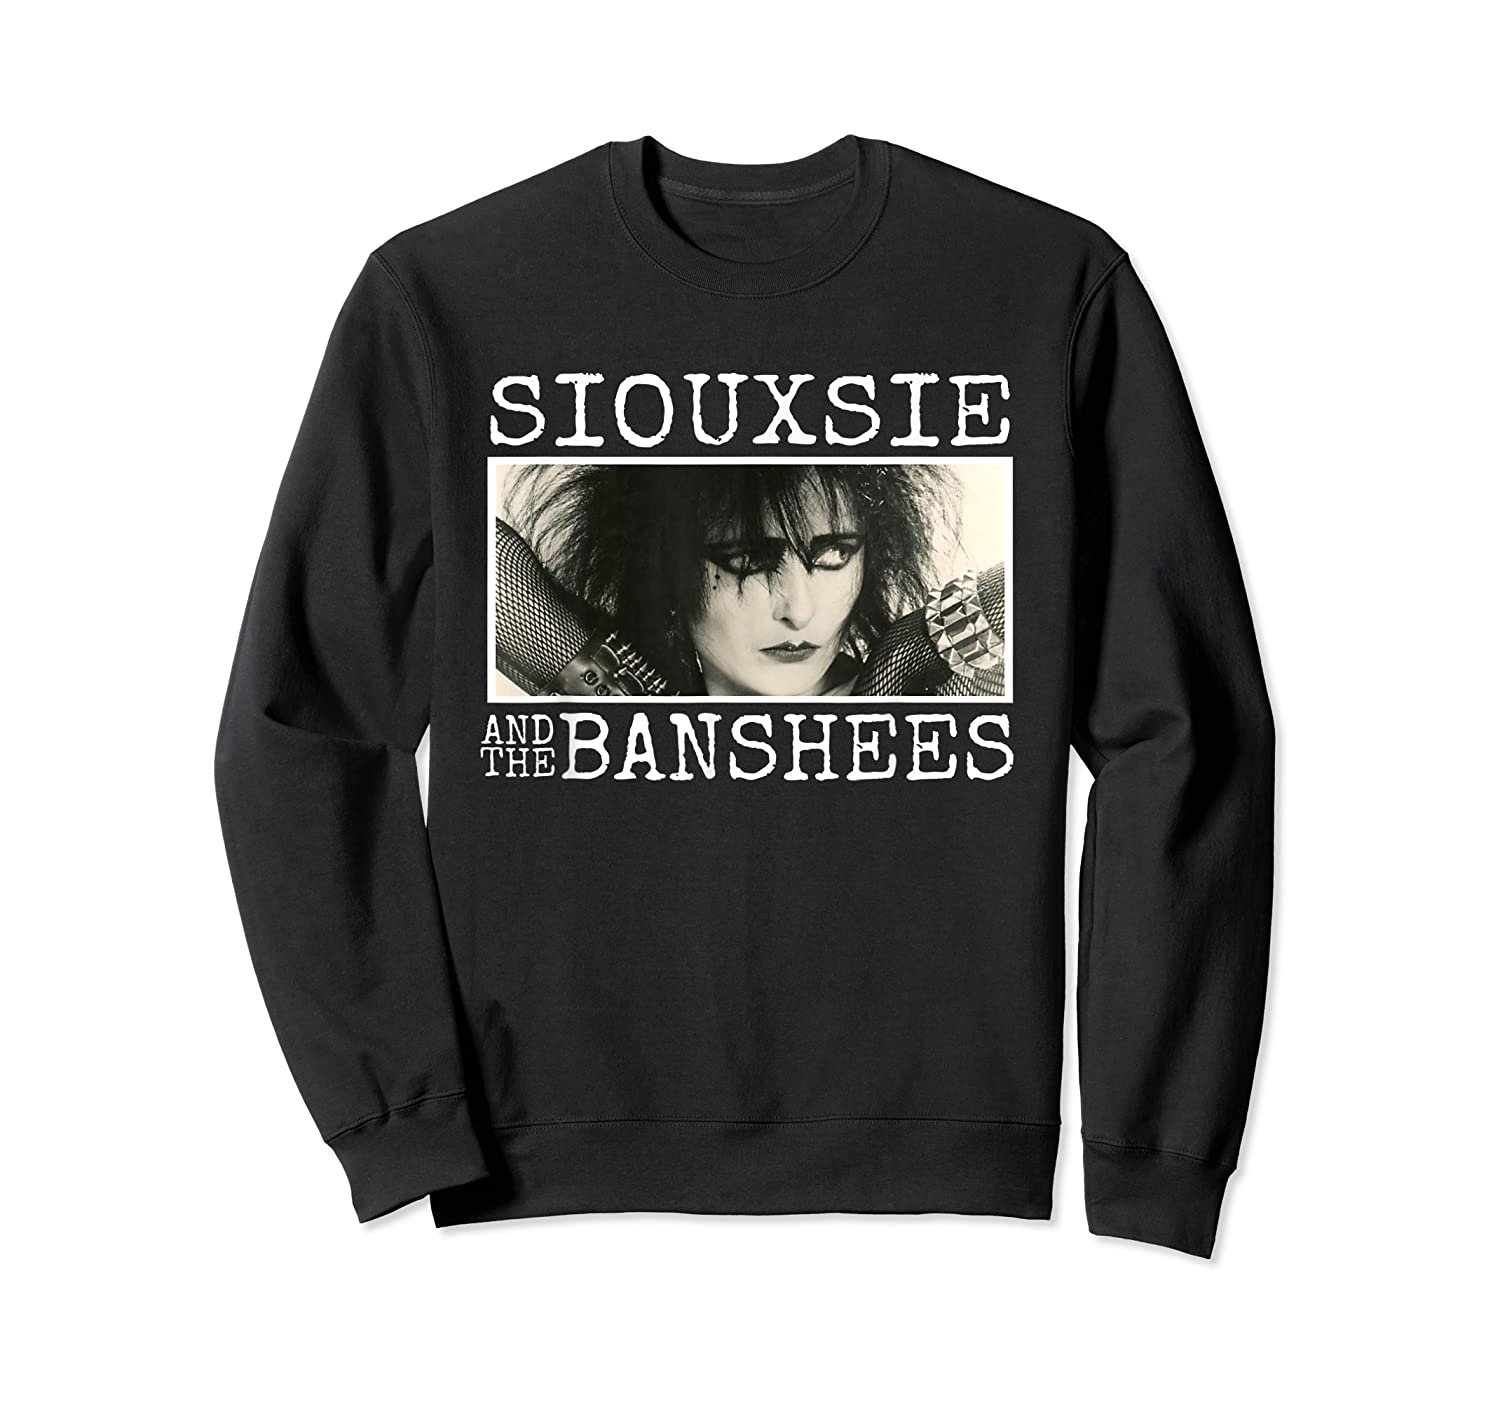 Siouxsie And The Banshee Siouxsie Sioux T Shirt Crewneck Sweater